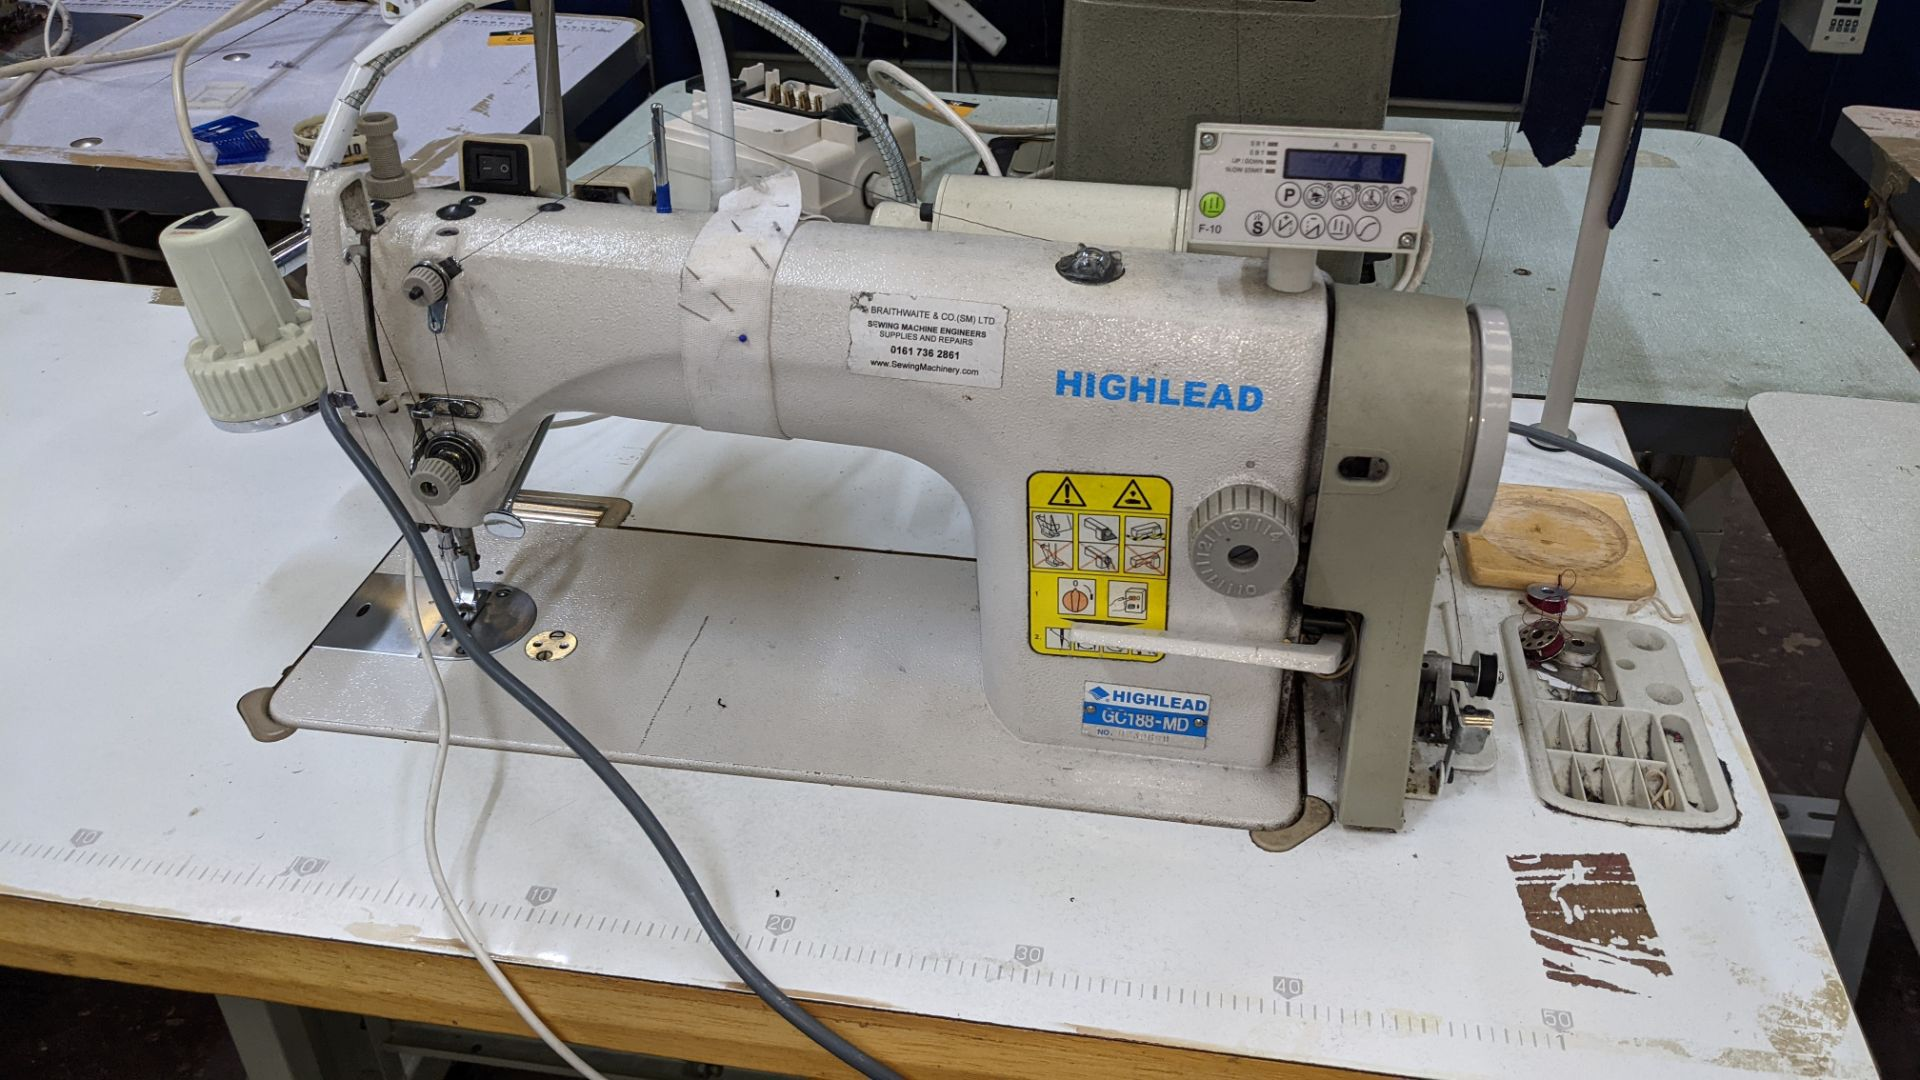 Highlead flat sewer model GC188-MD - Image 5 of 17